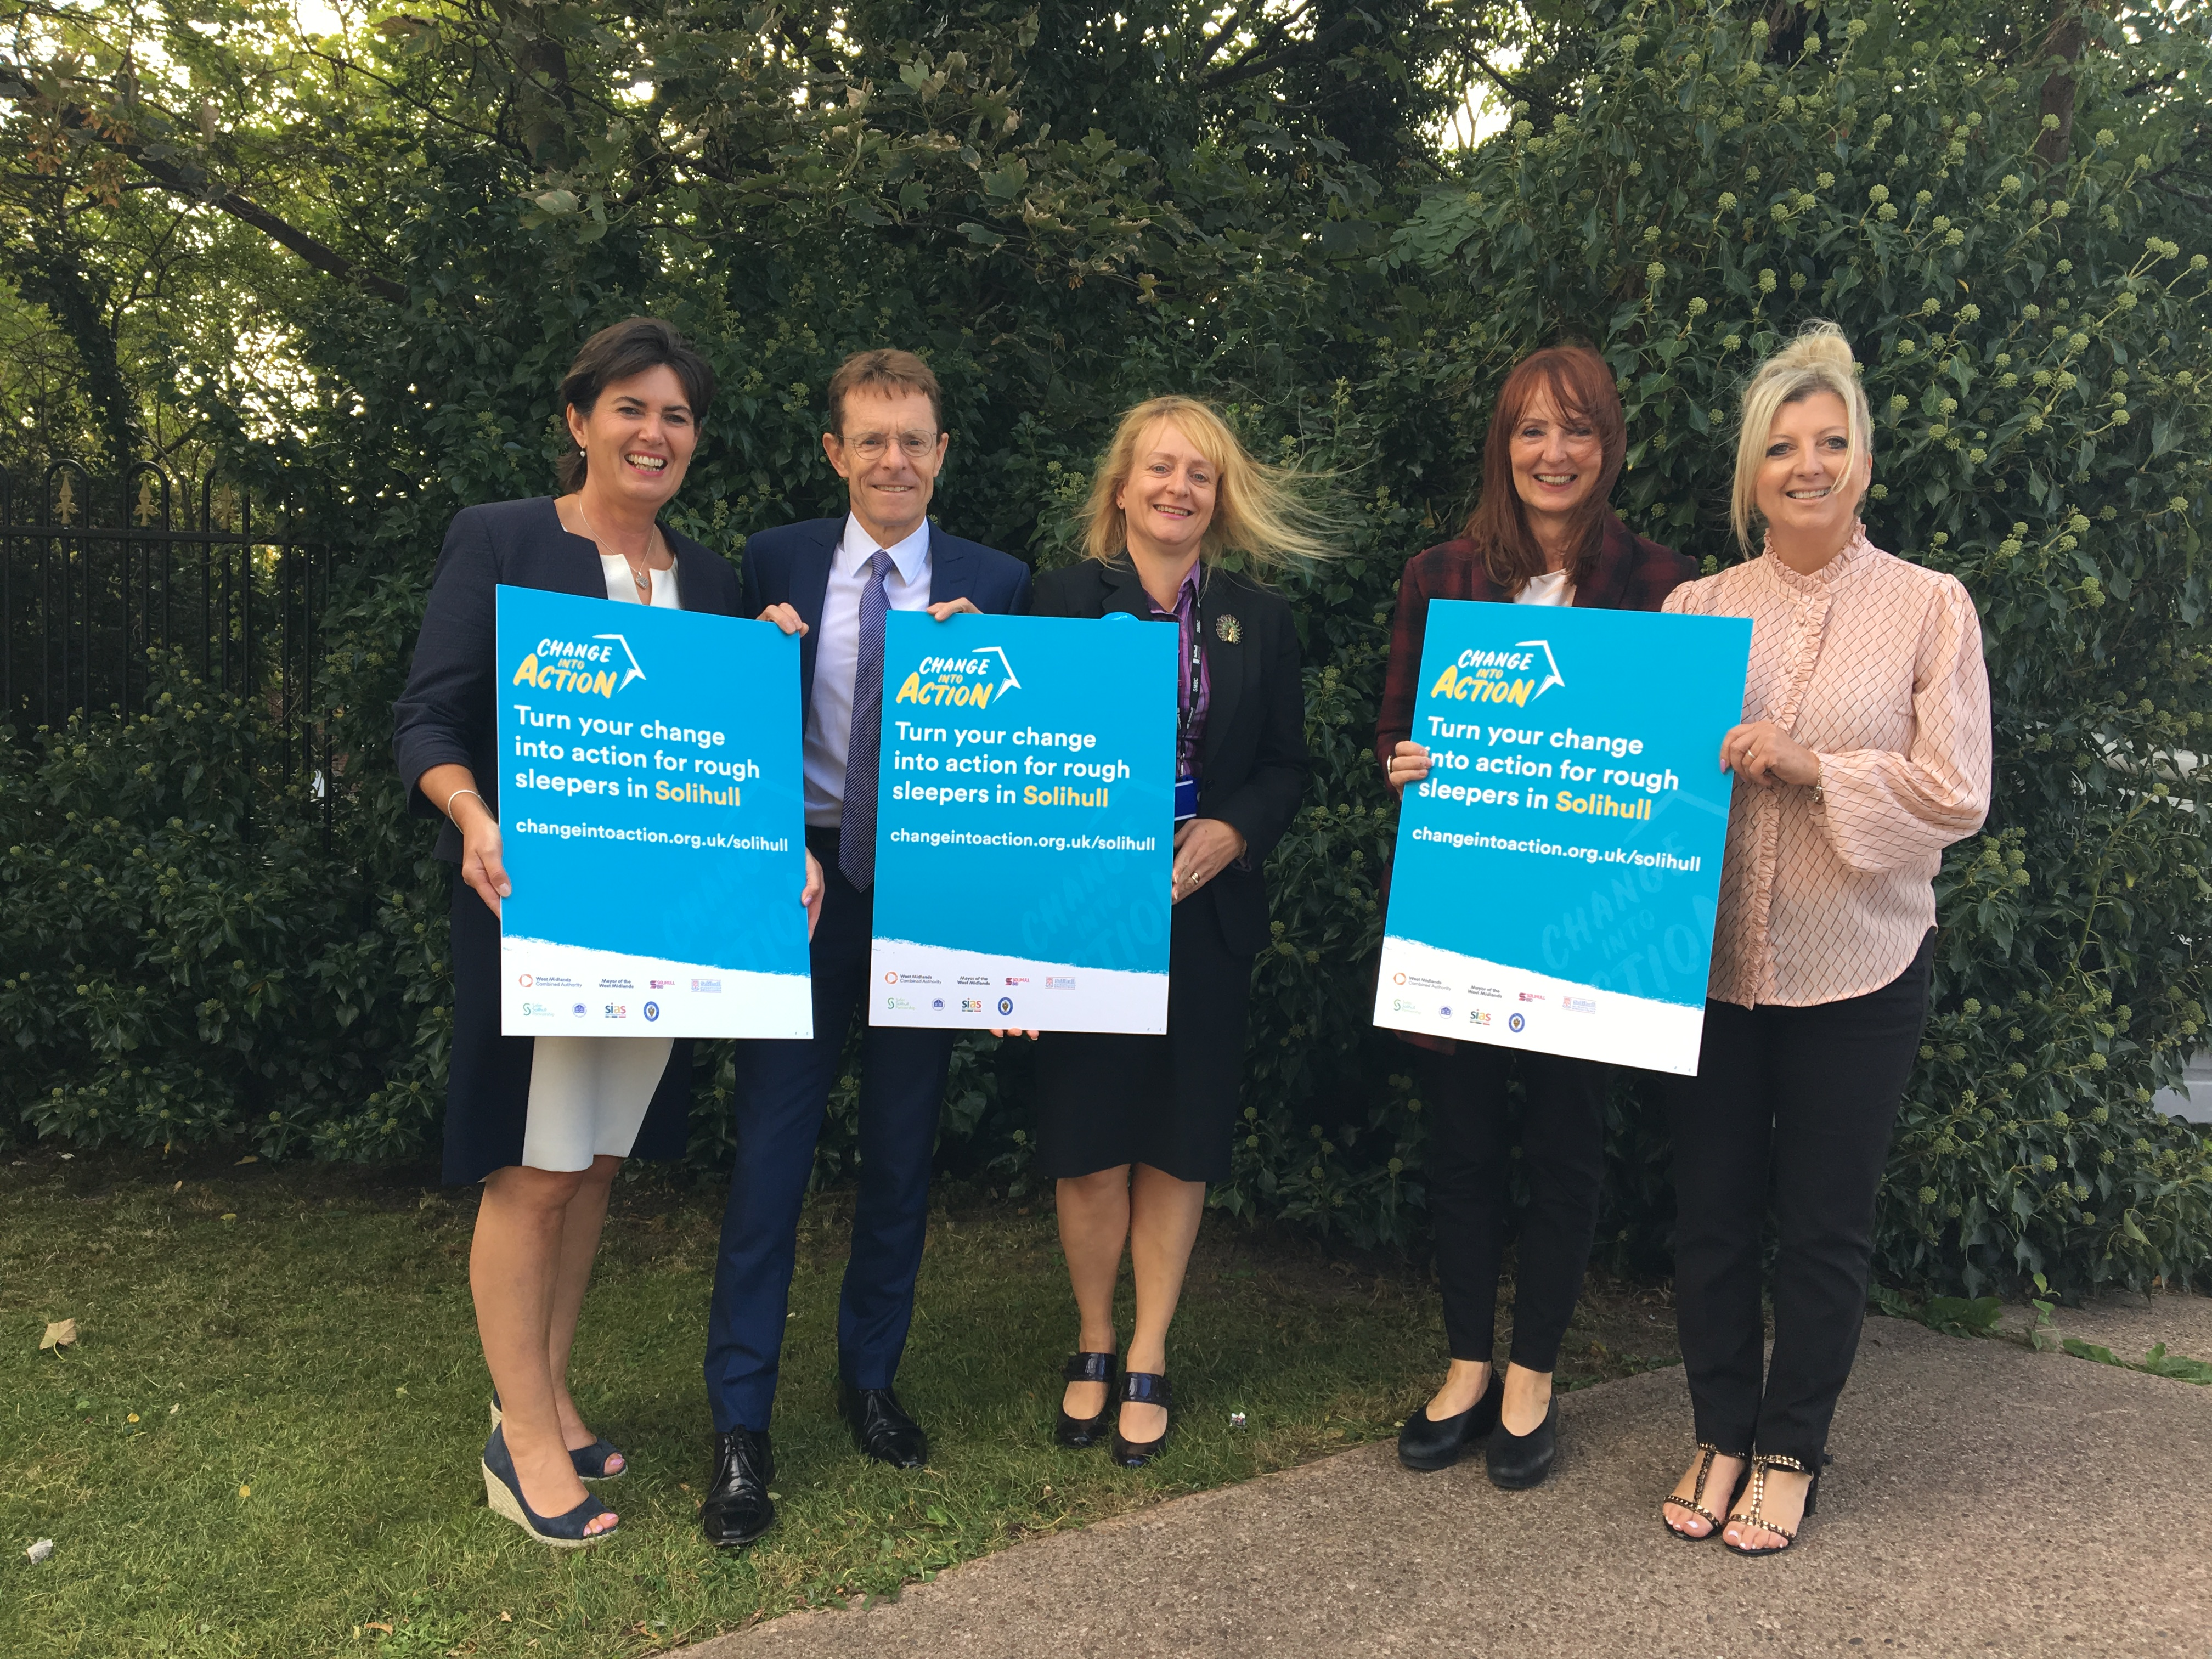 World Homeless Day – Solihull puts Change into Action